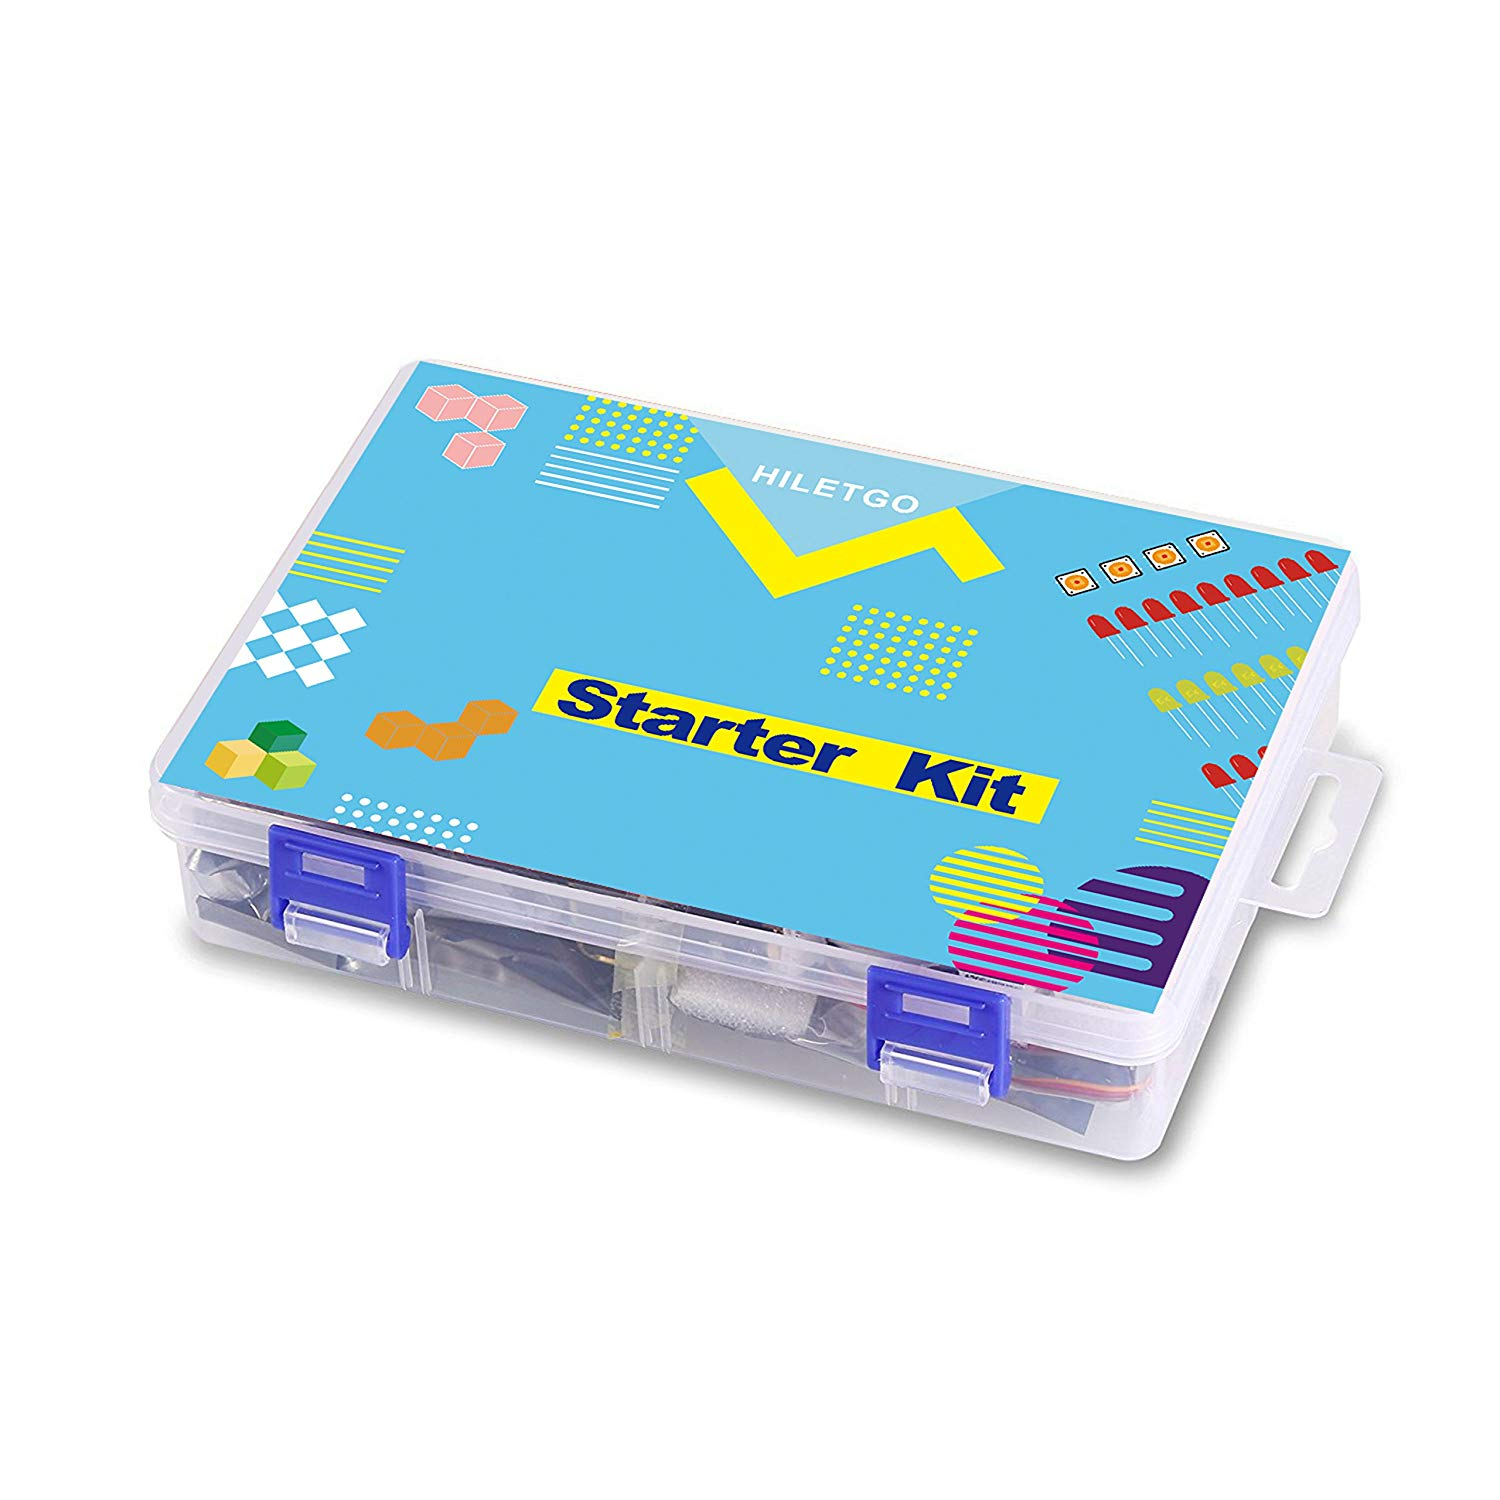 UNO Project Super Starter Kit with Tutorial Book From Knowing to Utilizing for Arduino